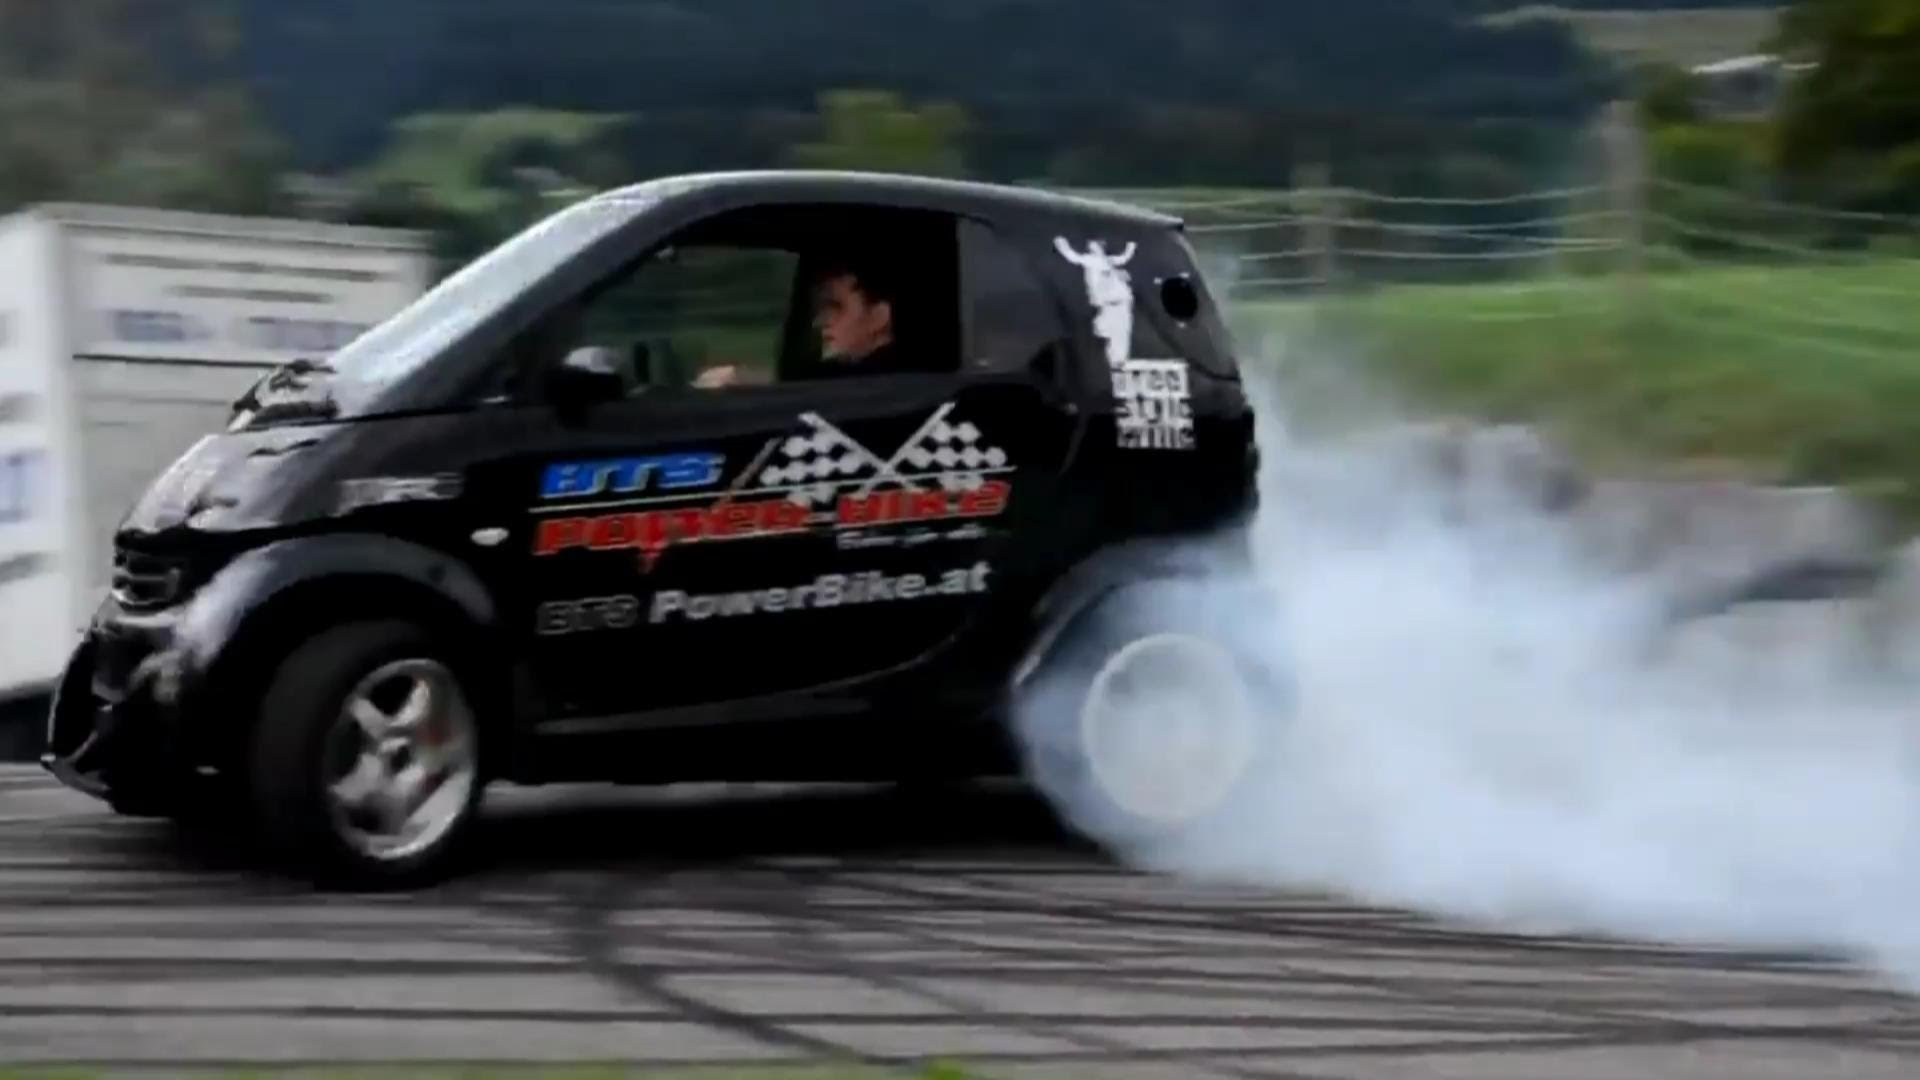 Hayabusa Powered Smart Car Is Doing Some Sick Burnouts And Doughnuts Muscle Horsepower